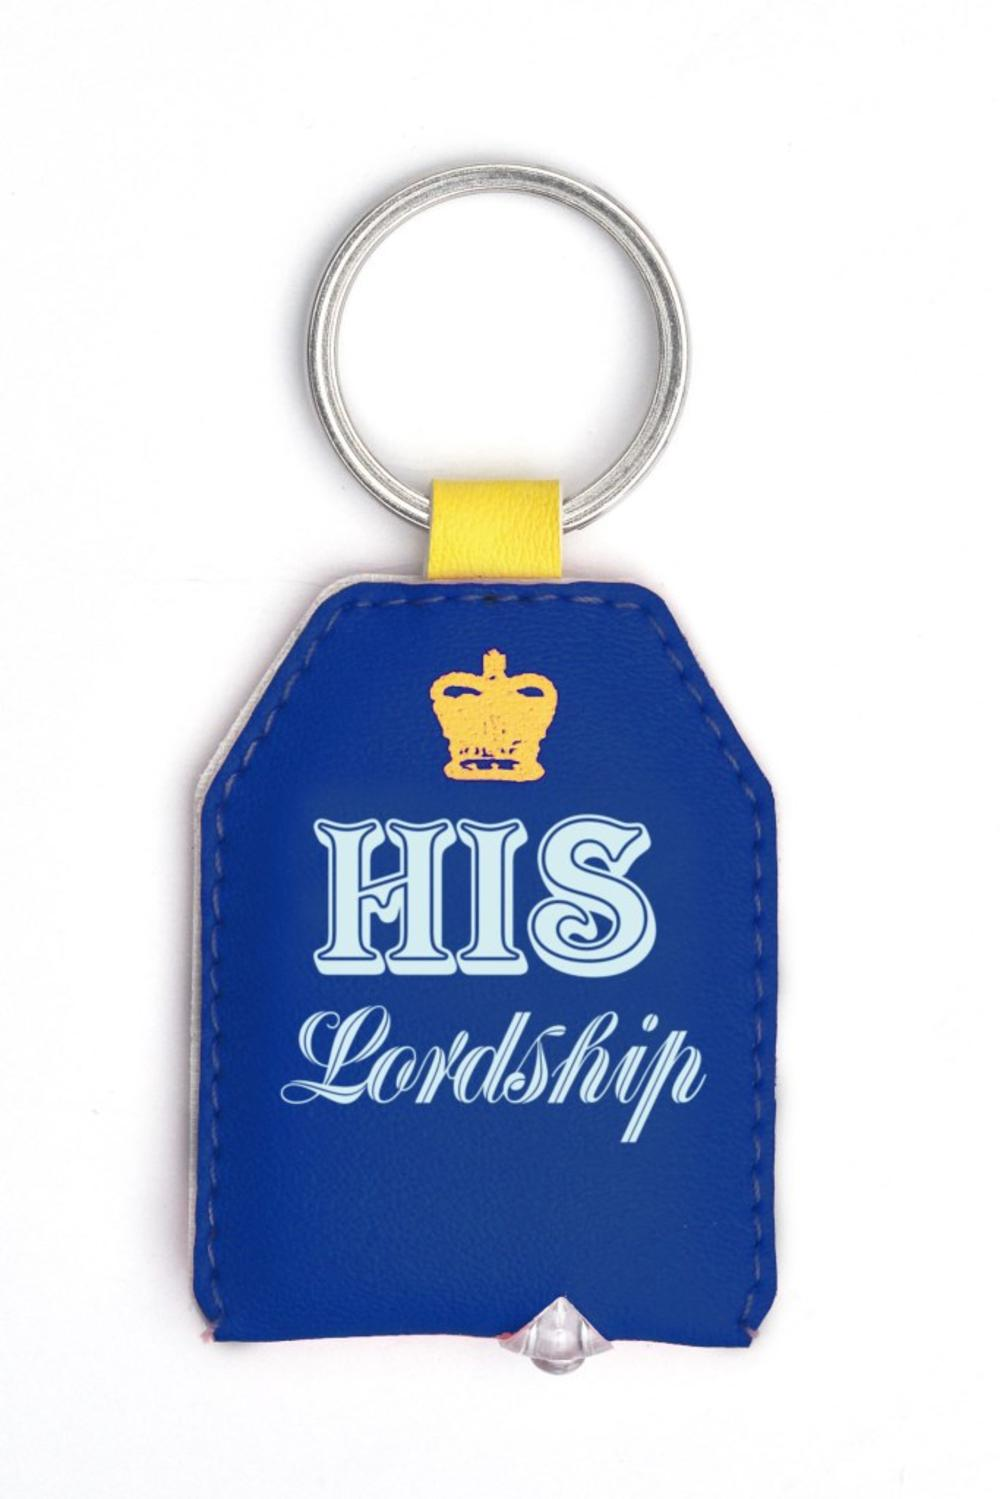 His Lordship LED Key Light Keyring